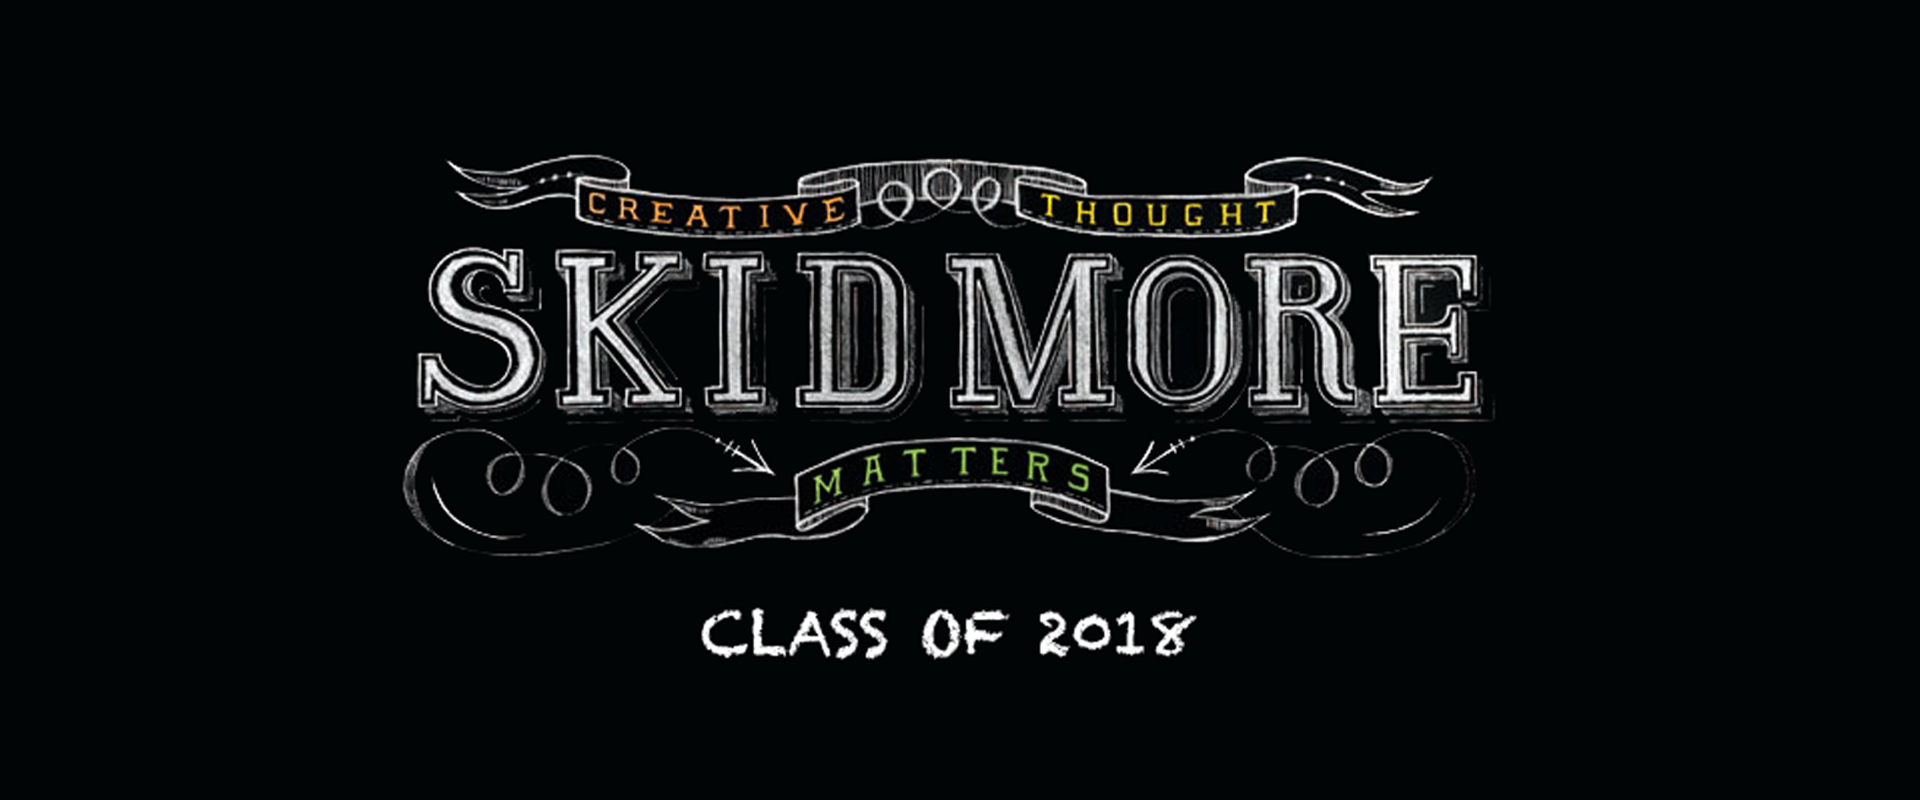 Skidmore 2018 by Zac Transport '18